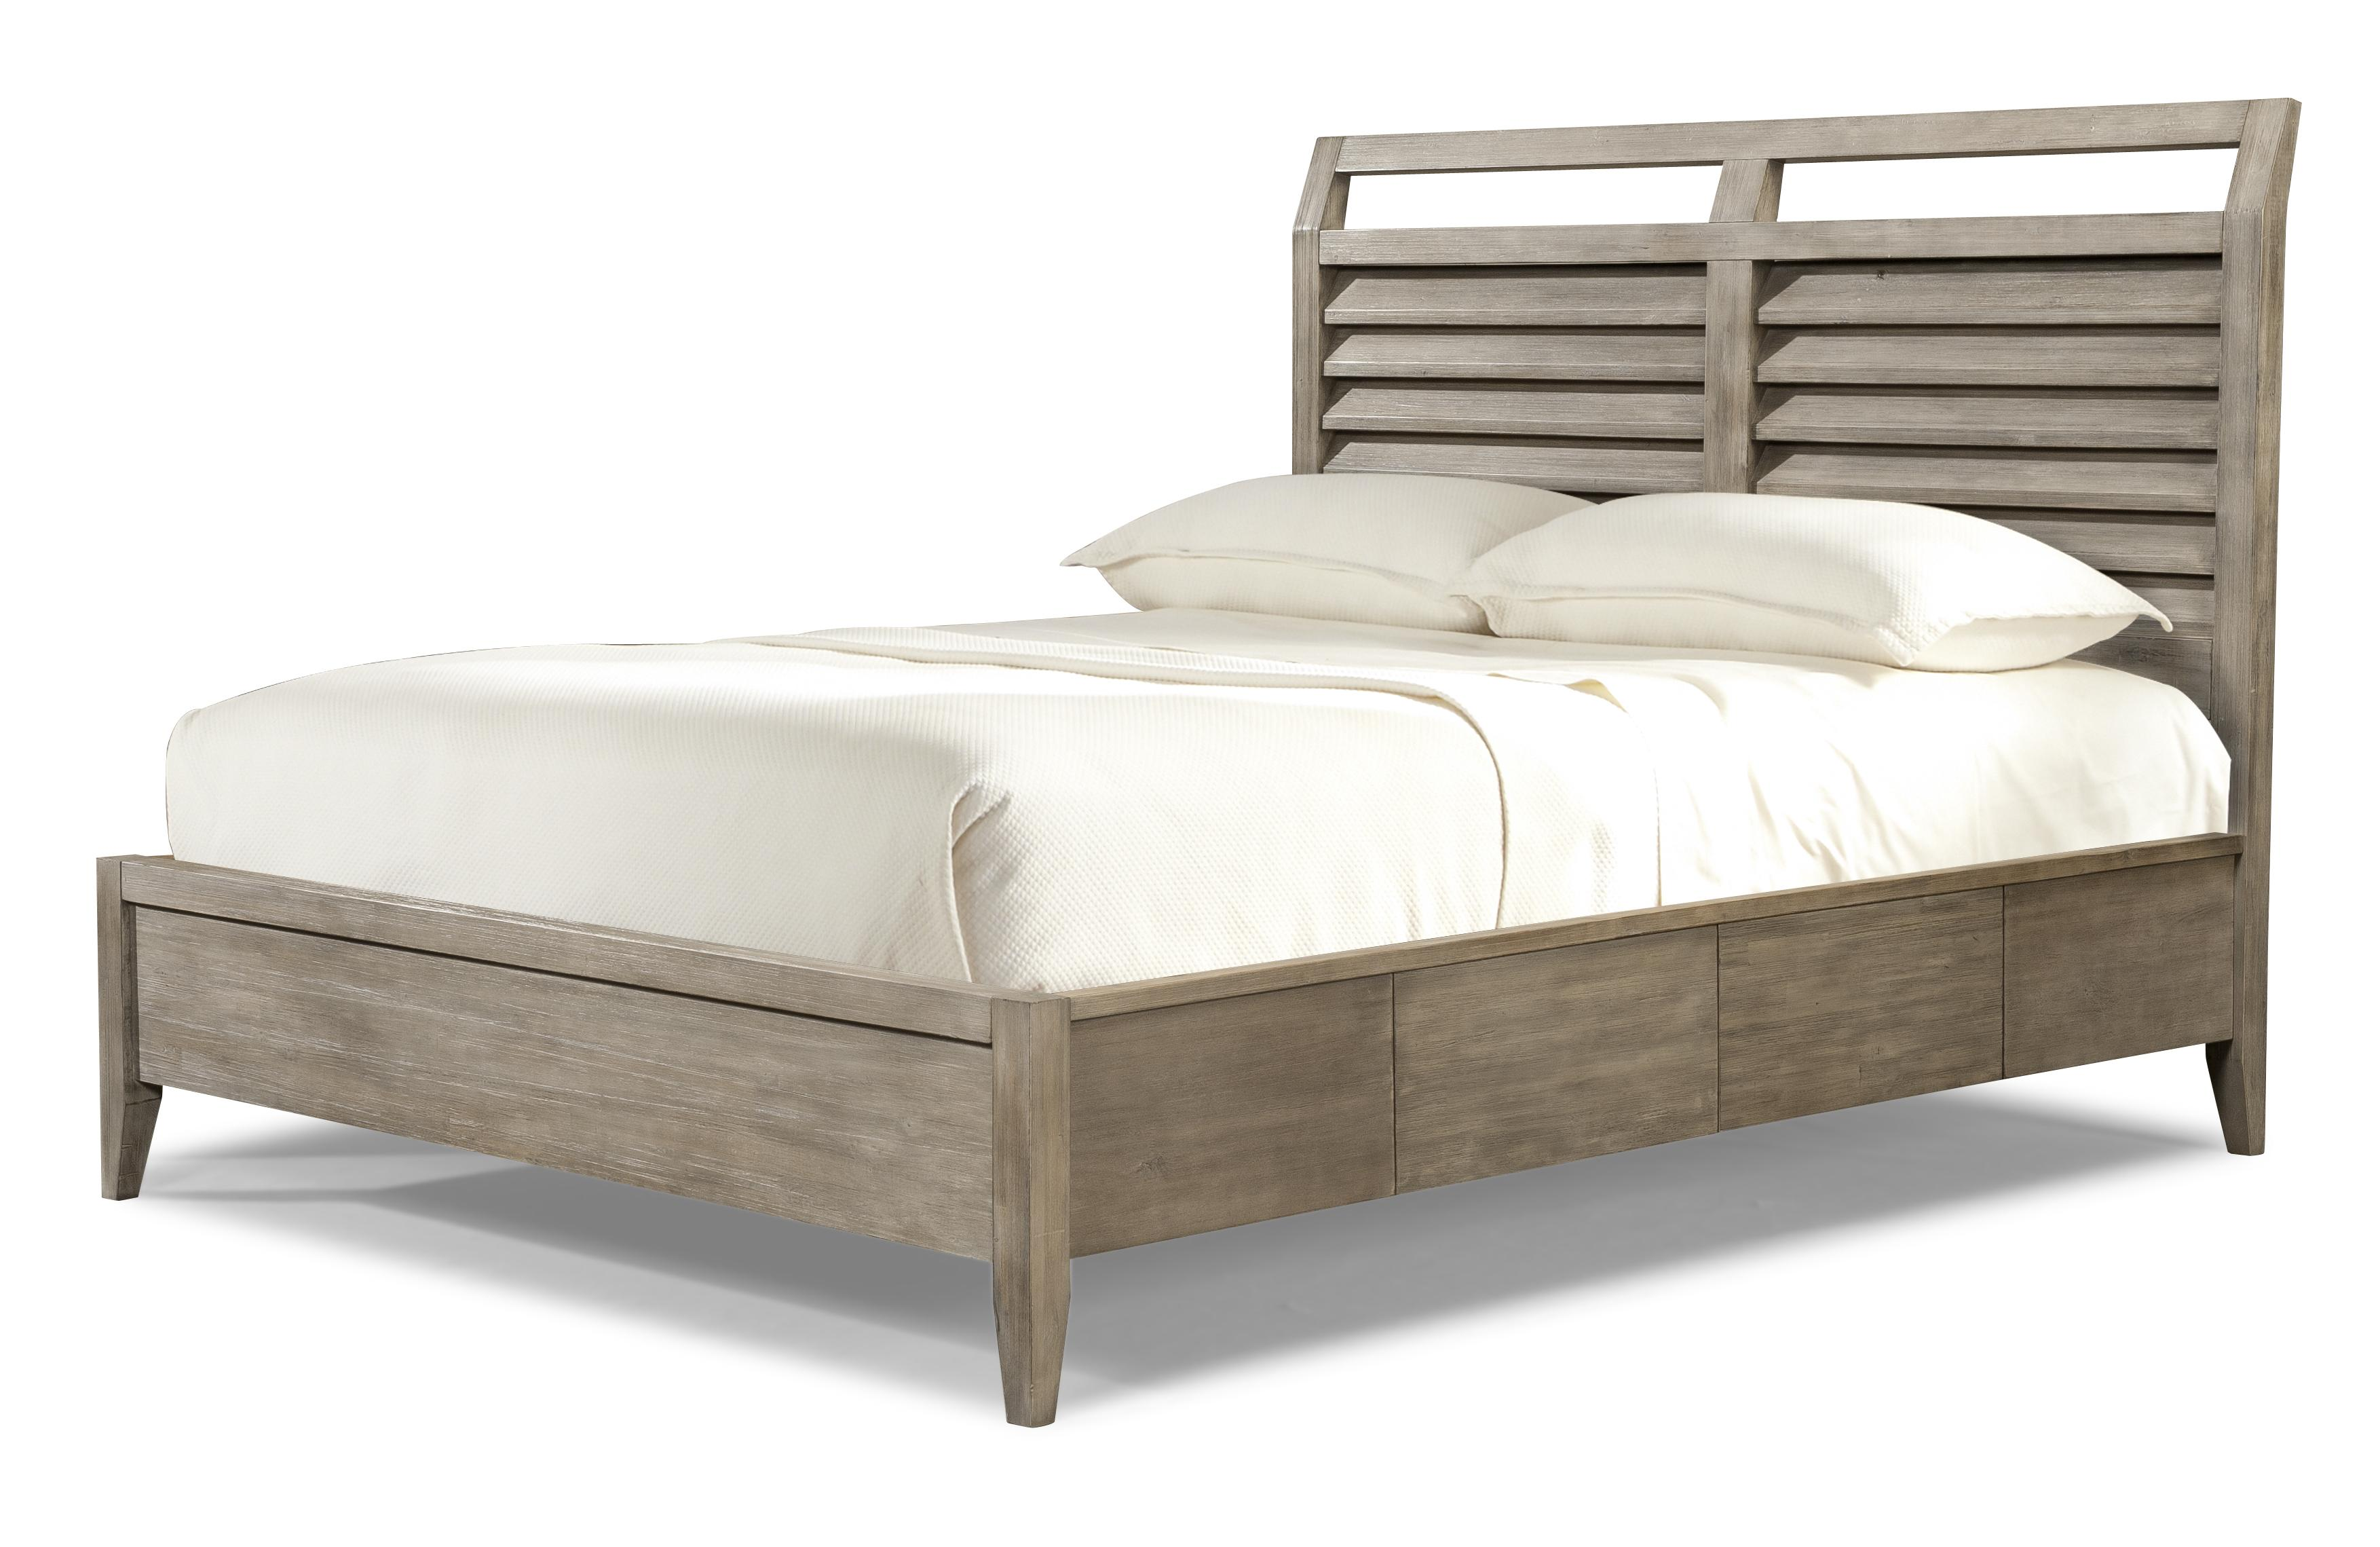 Cresent Fine Furniture Corliss Landing King Storage Bed - Item Number: 5632KB+KRL+KRS+KSL